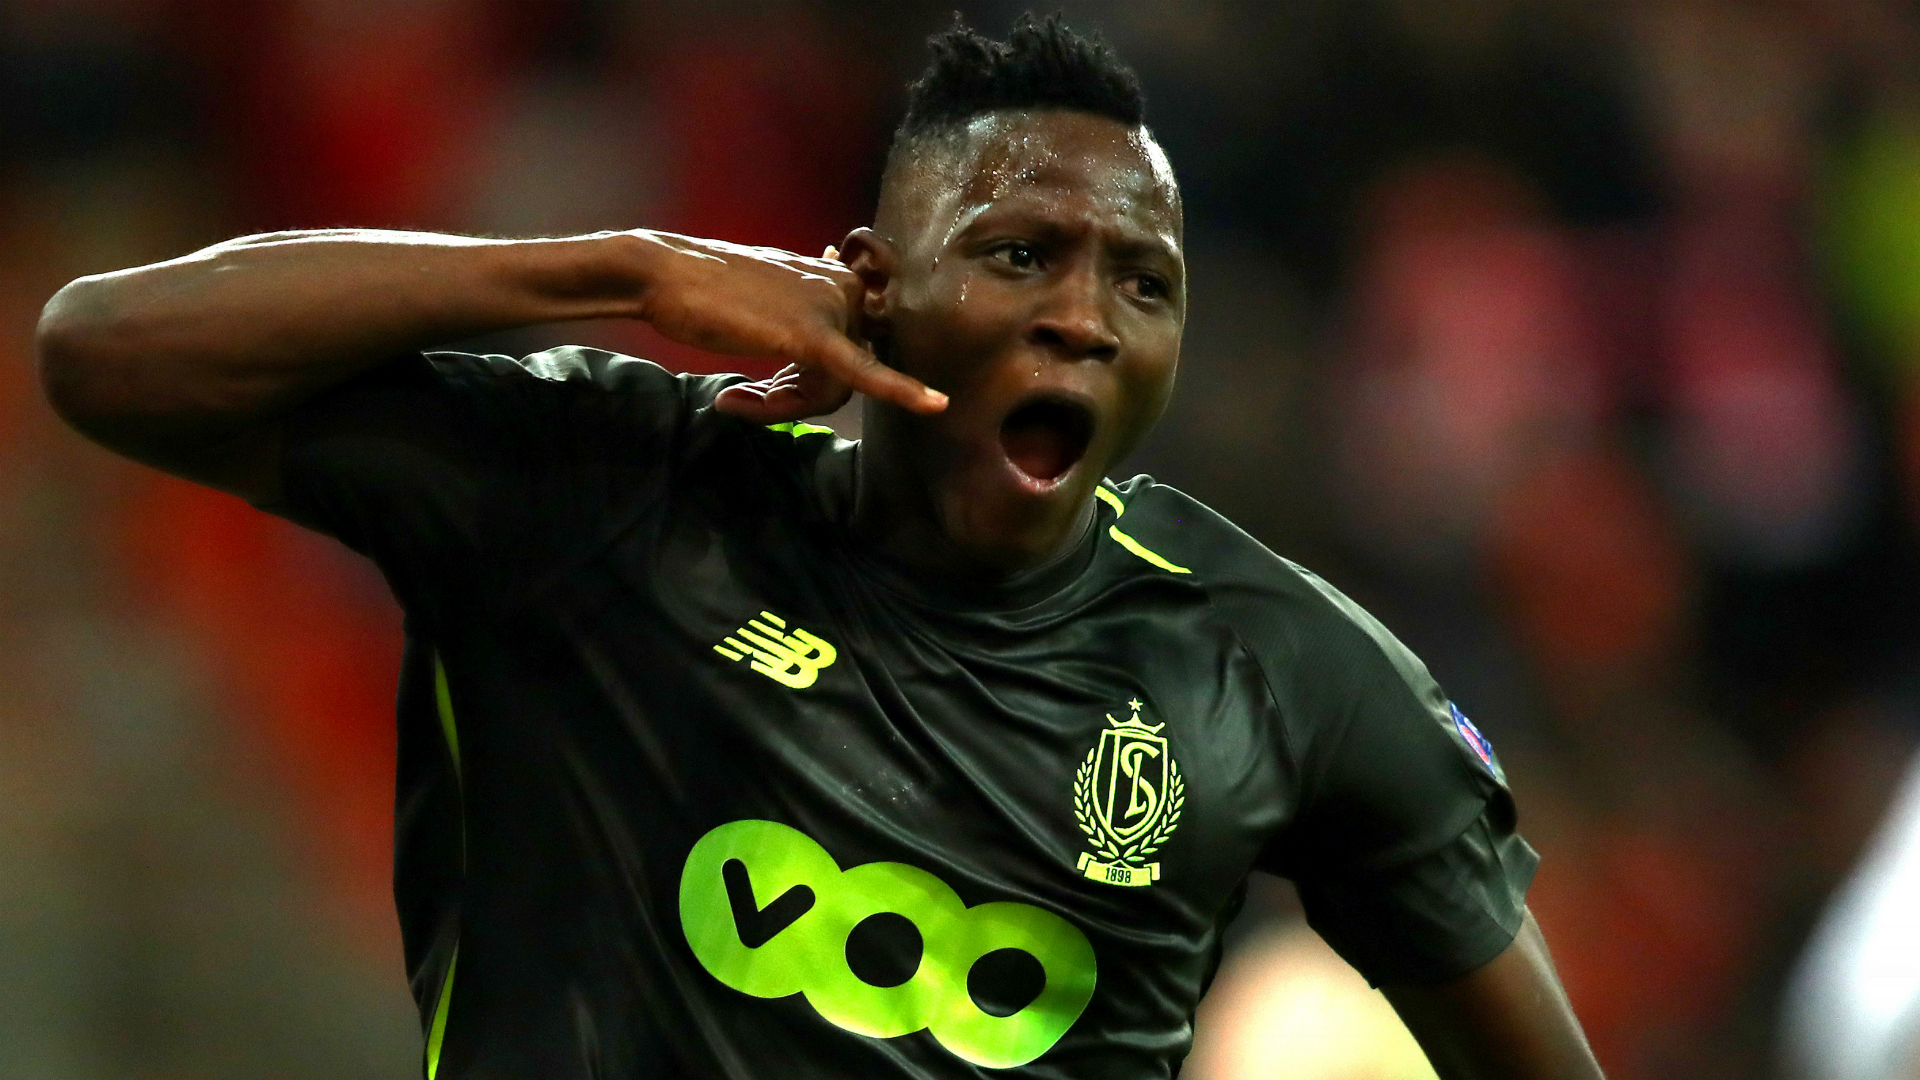 Southampton have made their first signing under Ralph Hasenhuttl, bringing in 20-year-old Mali international Moussa Djenepo.